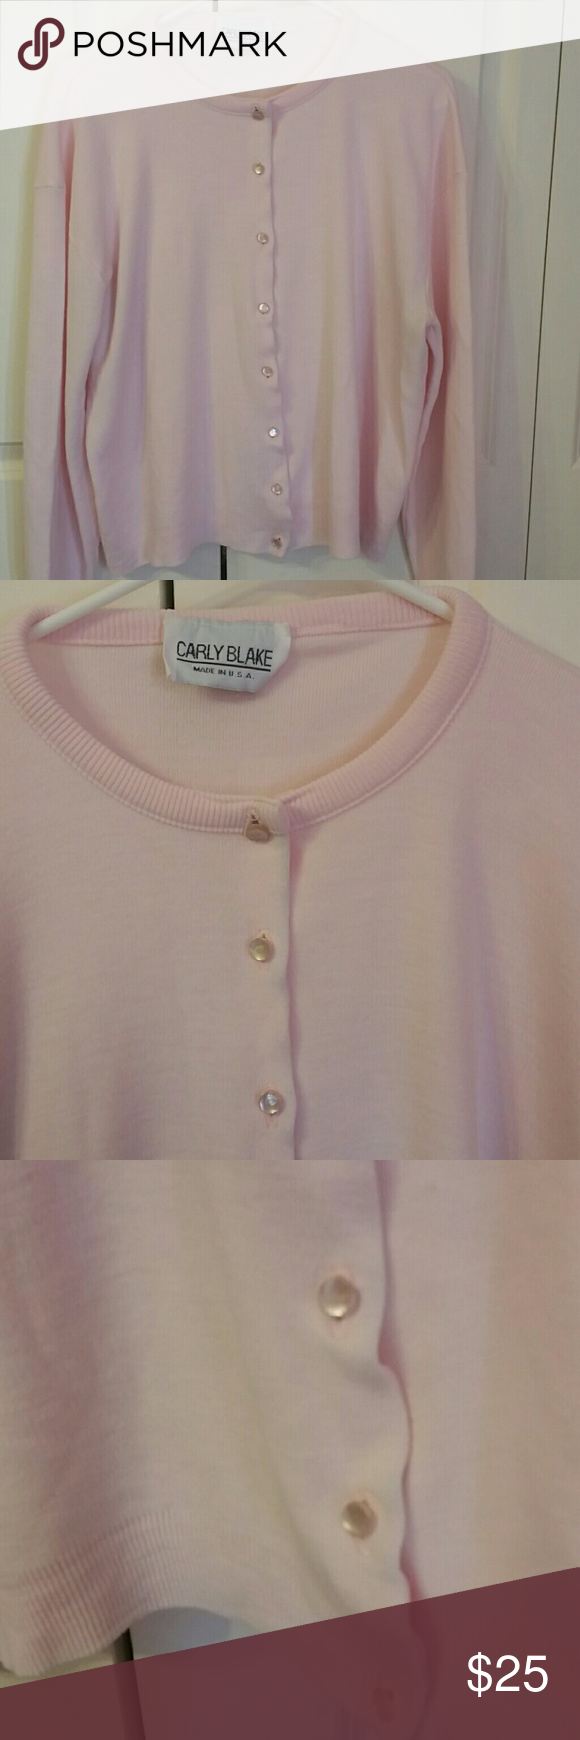 PRETTY IN PINK! Gorgeous perfect light shade of pink button down sweater,  Excellent condition and quality!  Super comfy and soft Tops